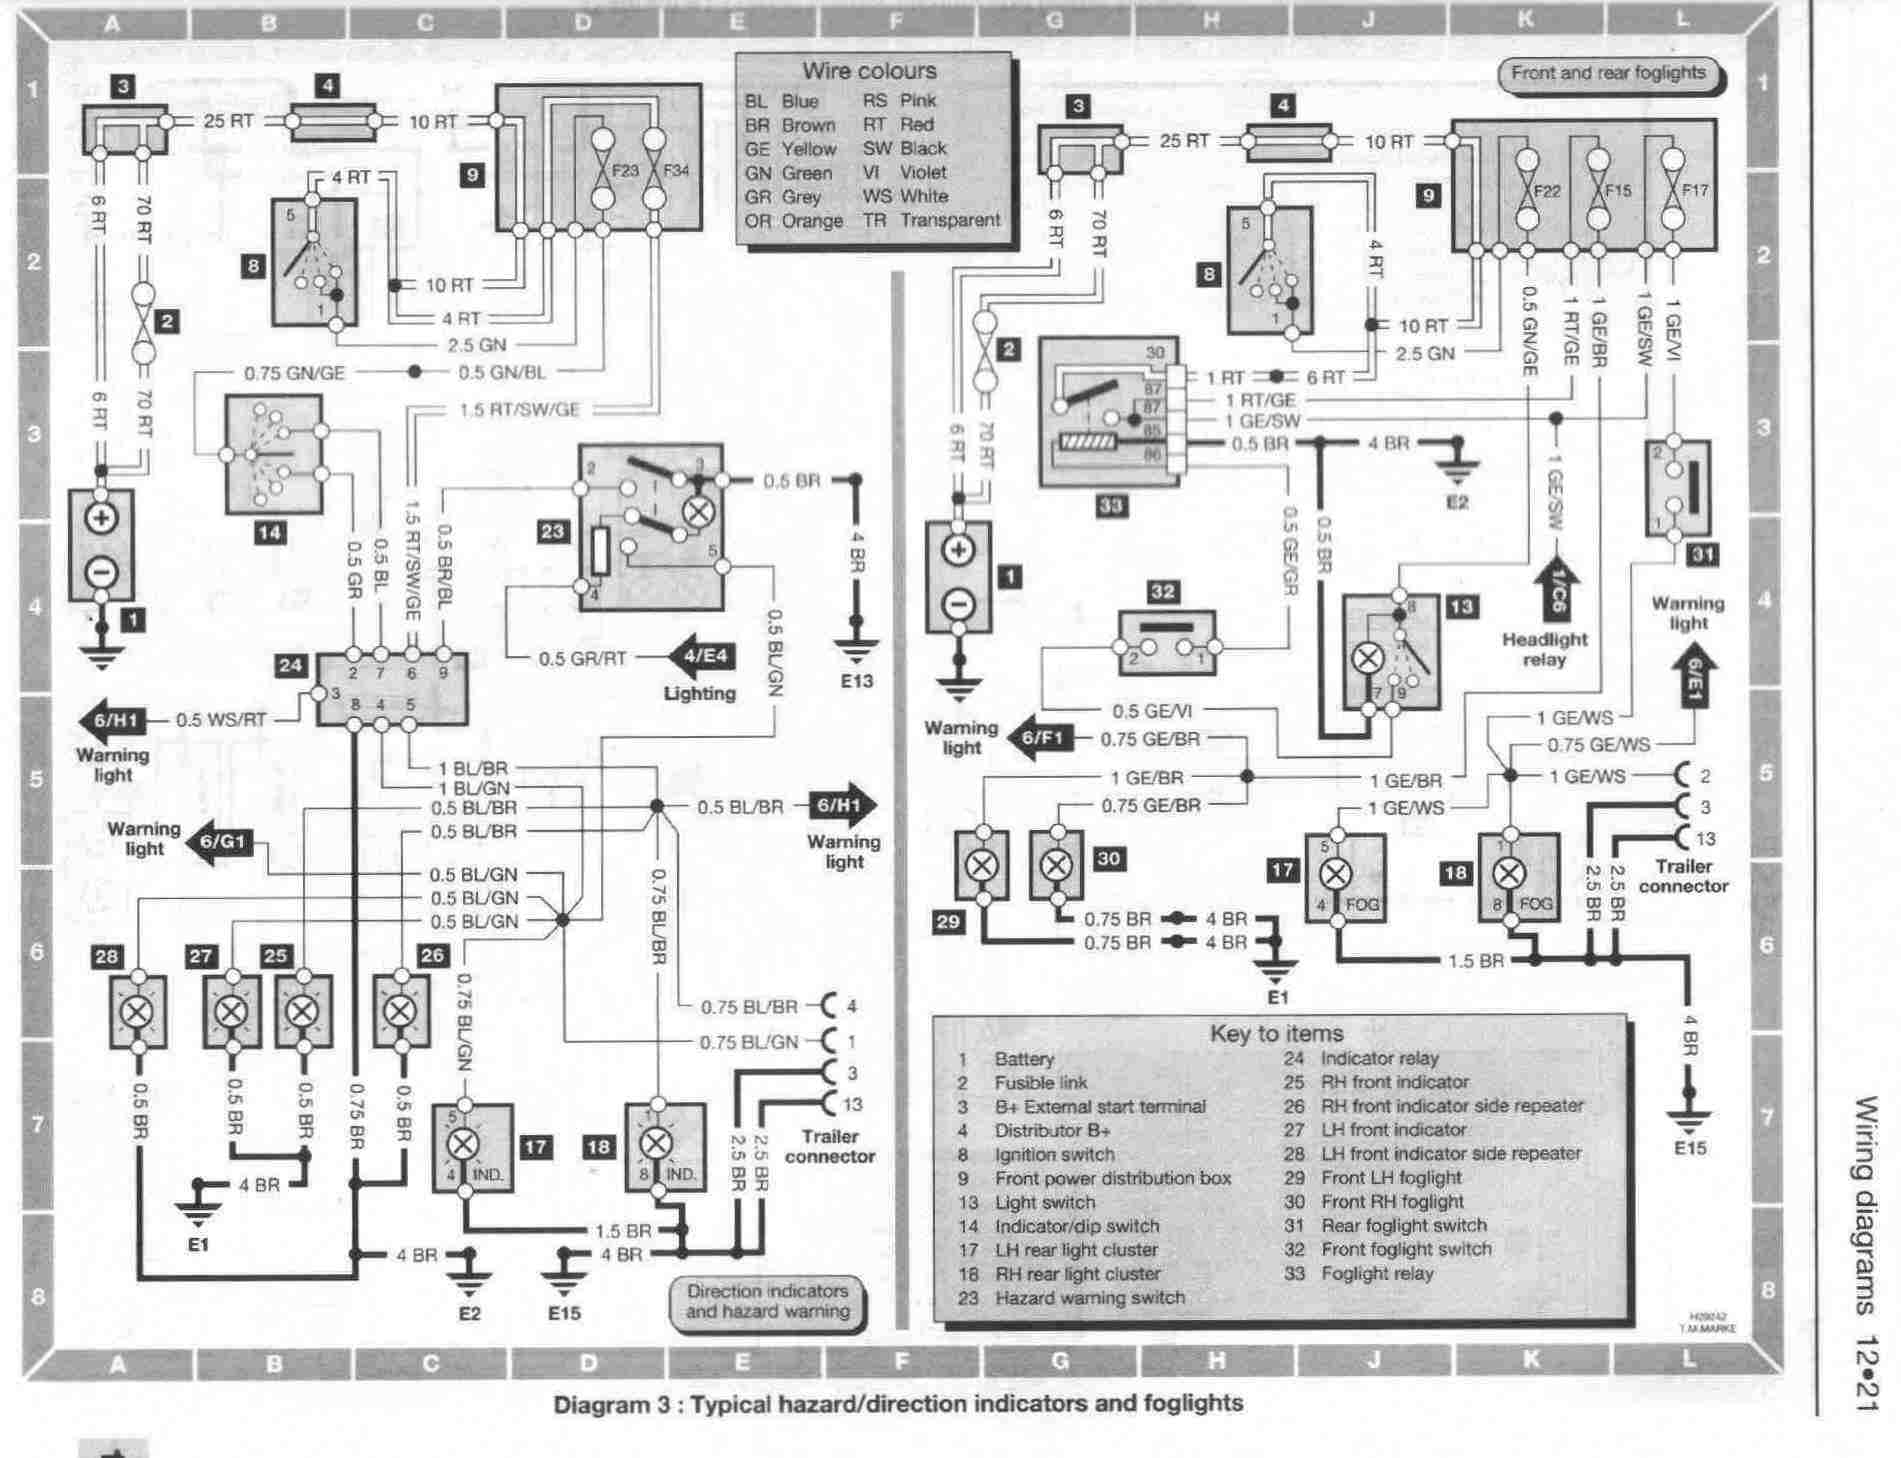 foglamp wiring wiring diagram for international 656 the wiring diagram ih wiring diagrams at eliteediting.co